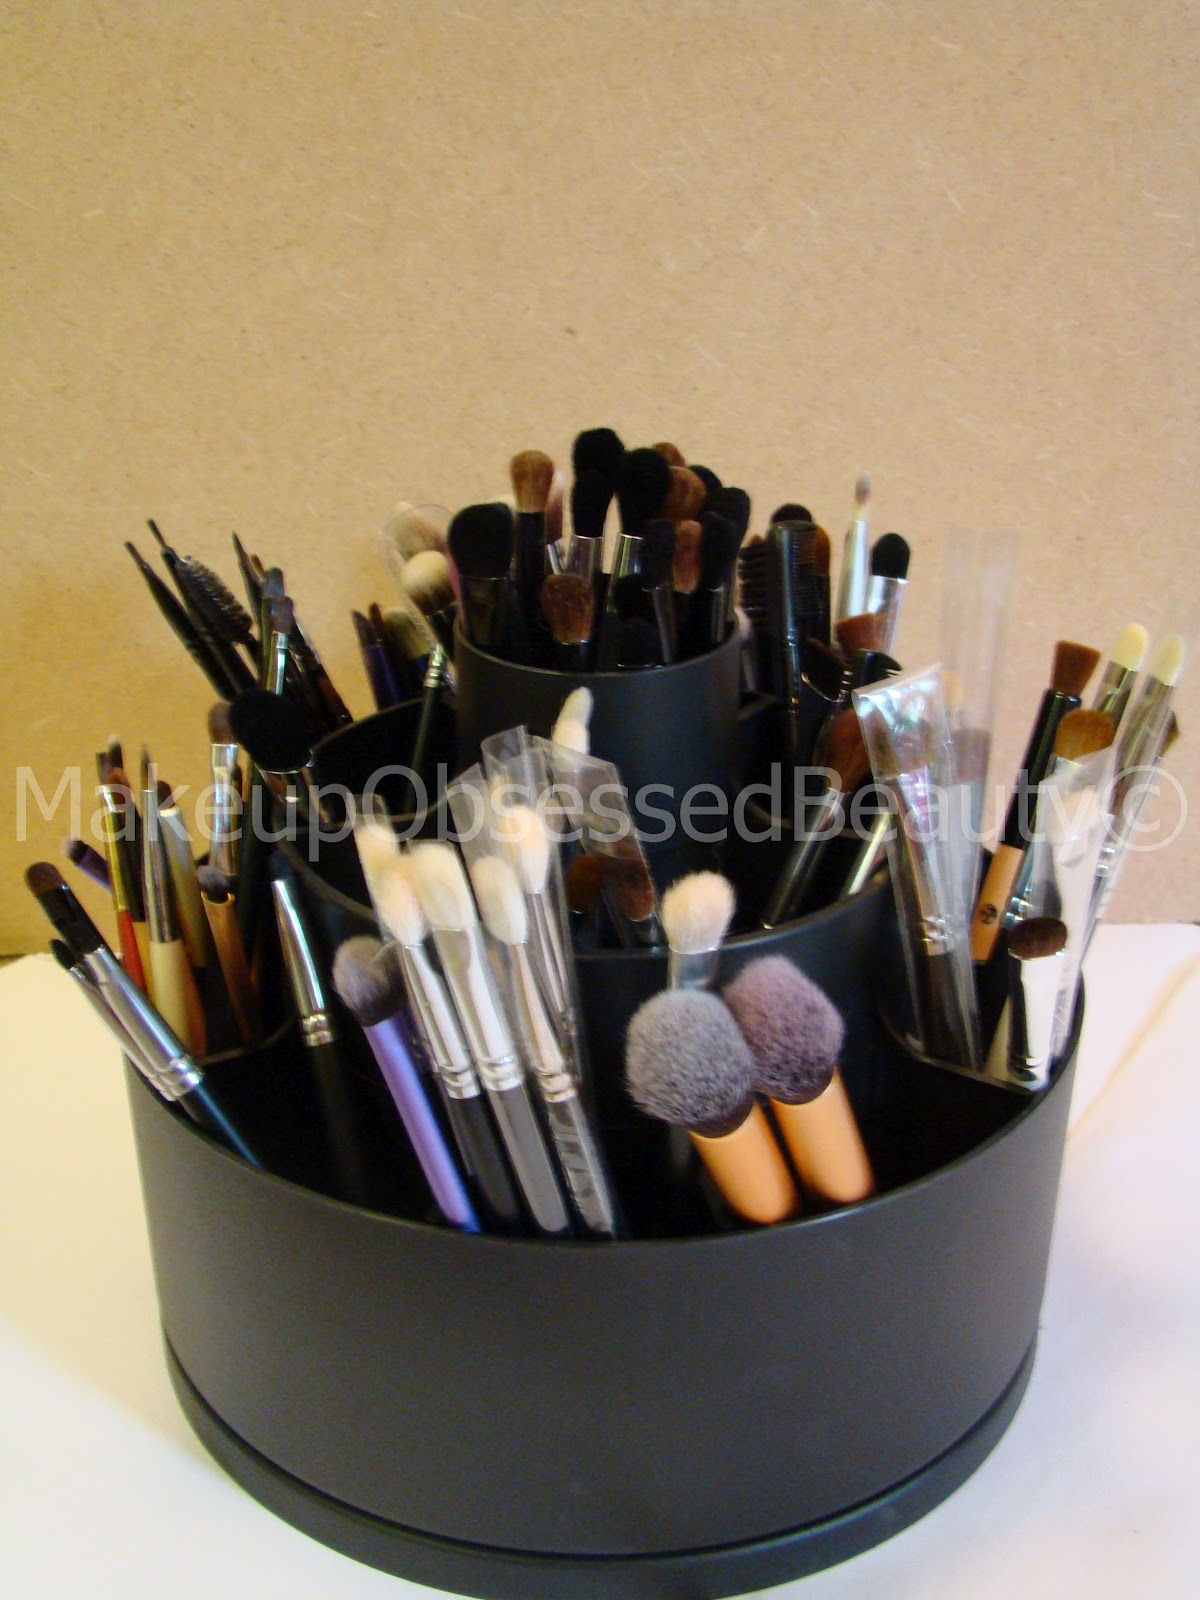 Makeup Brushes Sponge Collection: How I Store My Makeup Brushes. Revolving Makeup Brush